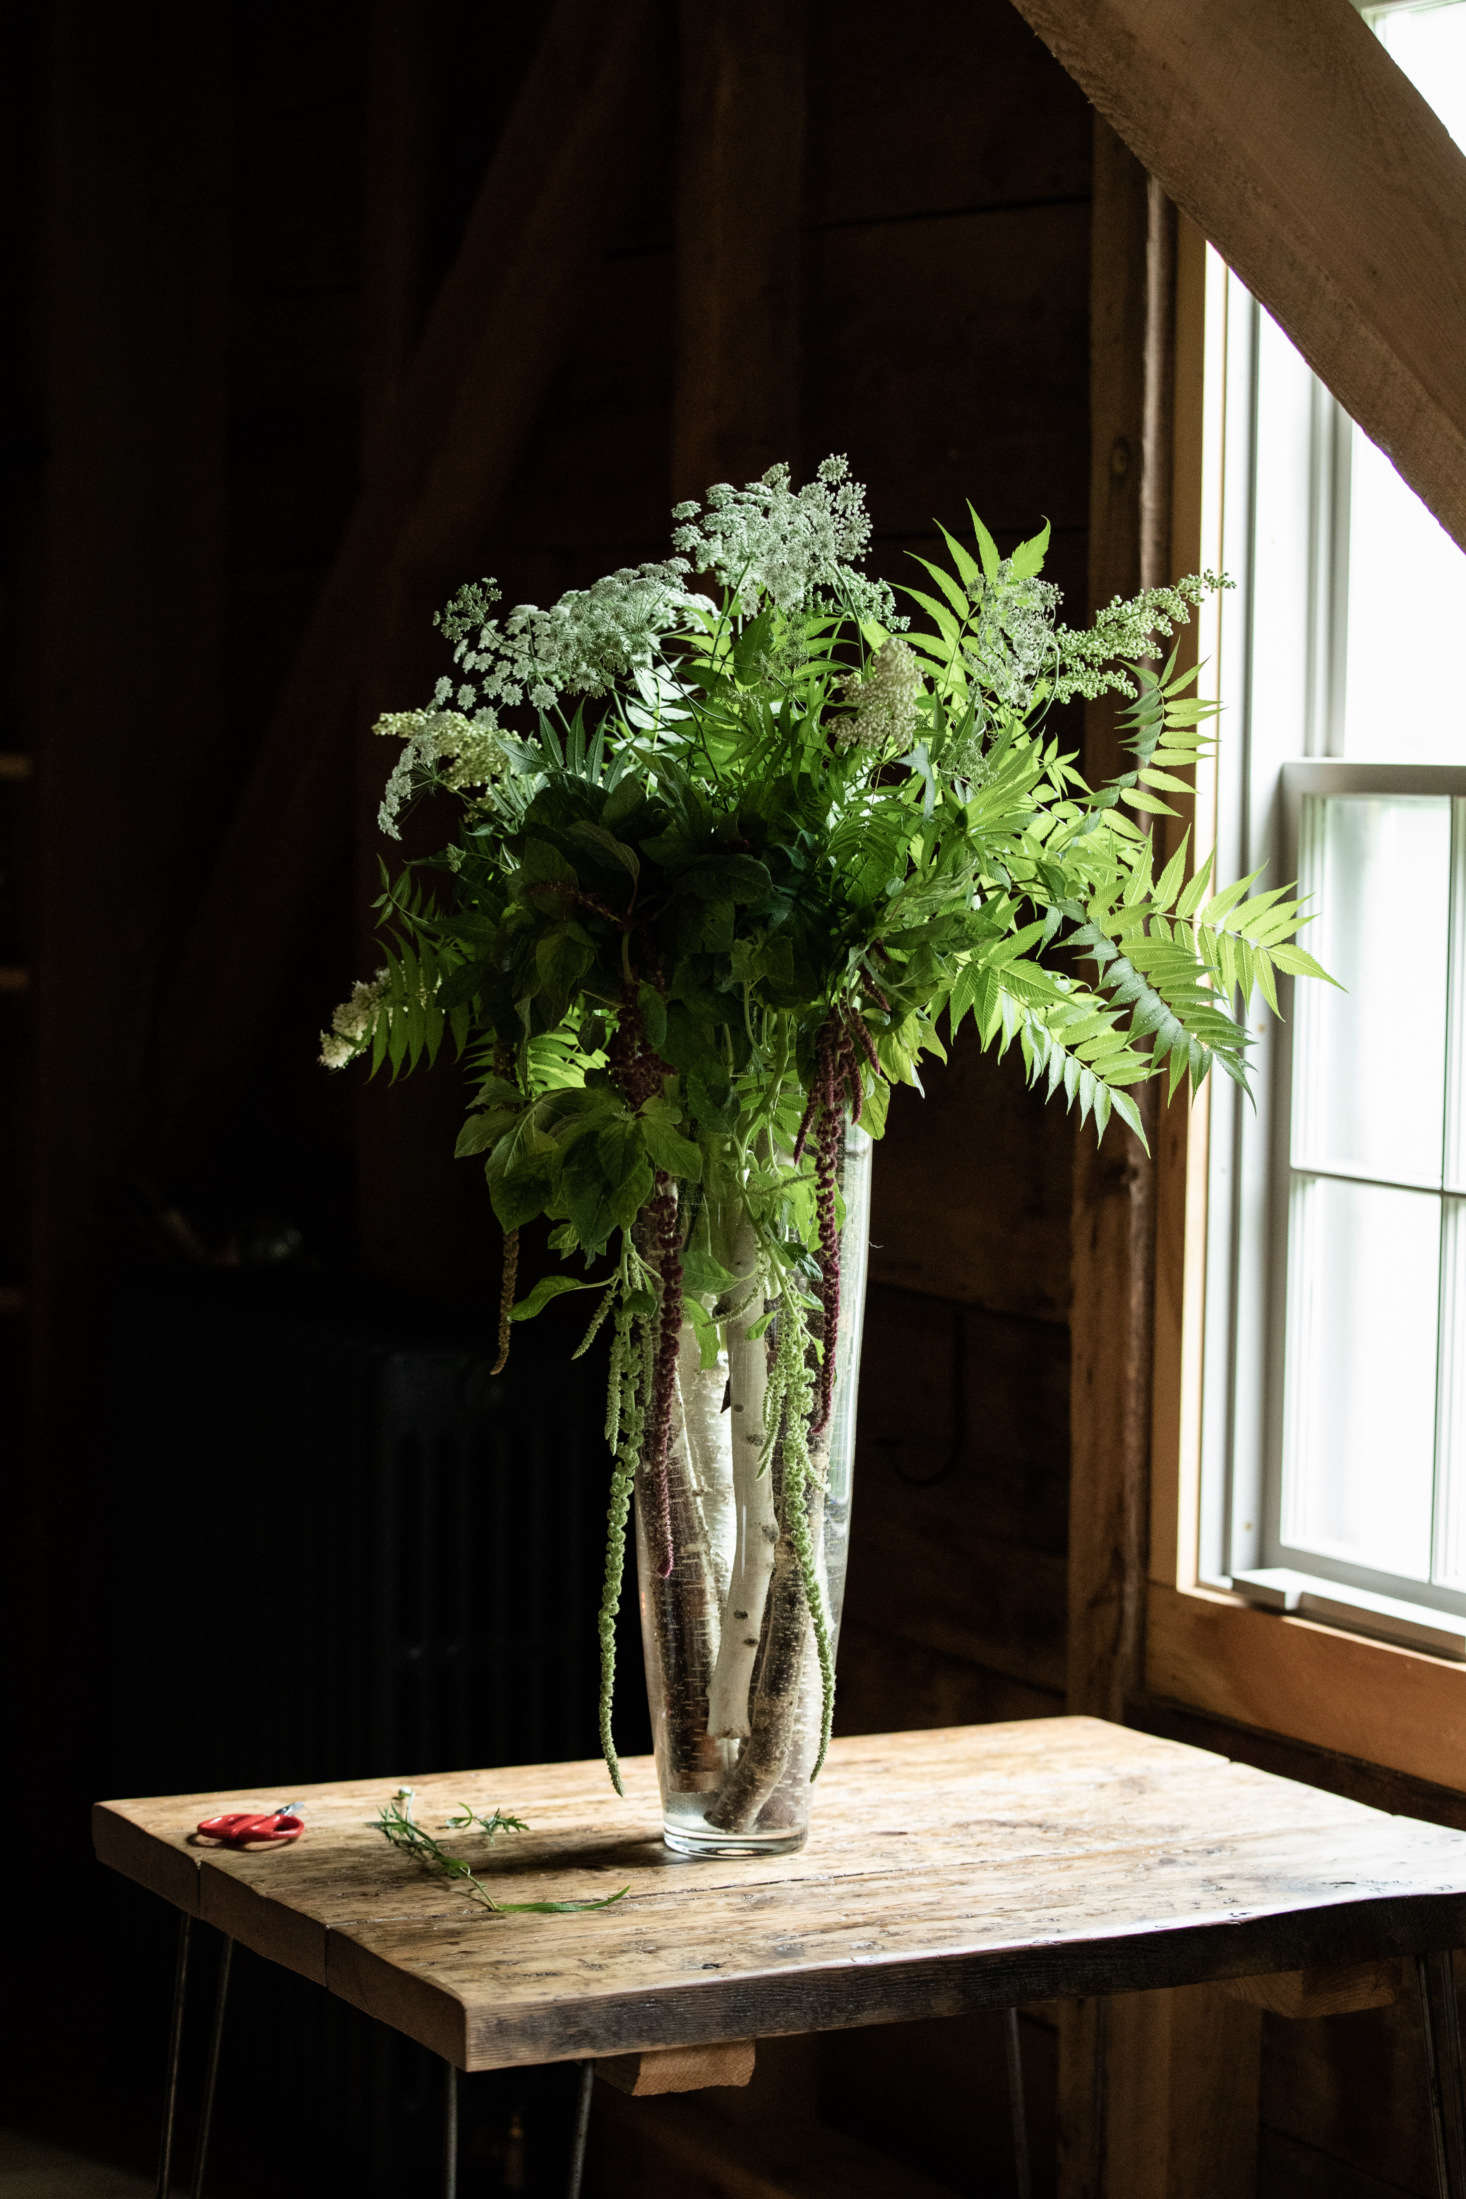 French starts every arrangement with a few birch logs in the bottom of the vase, which add a woodsy touch and help anchor the large, heavy arrangements to the table. She collects them from the side of the road &#8